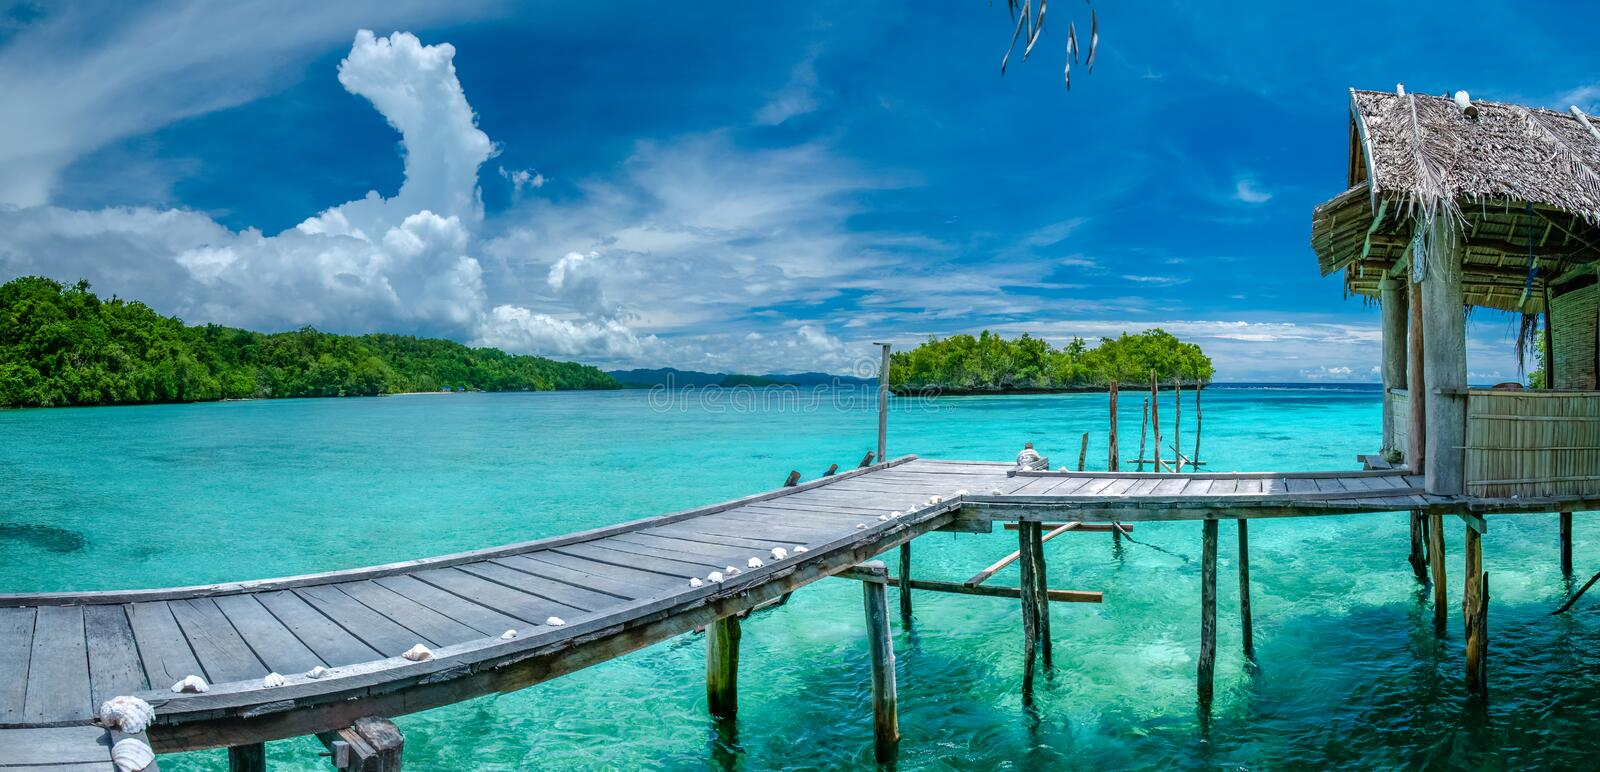 Beautiful Blue Lagoone with some Bamboo Huts, Kordiris Homestay, Palmtree in Front, Gam Island, West Papuan, Raja Ampat. Indonesia royalty free stock photos